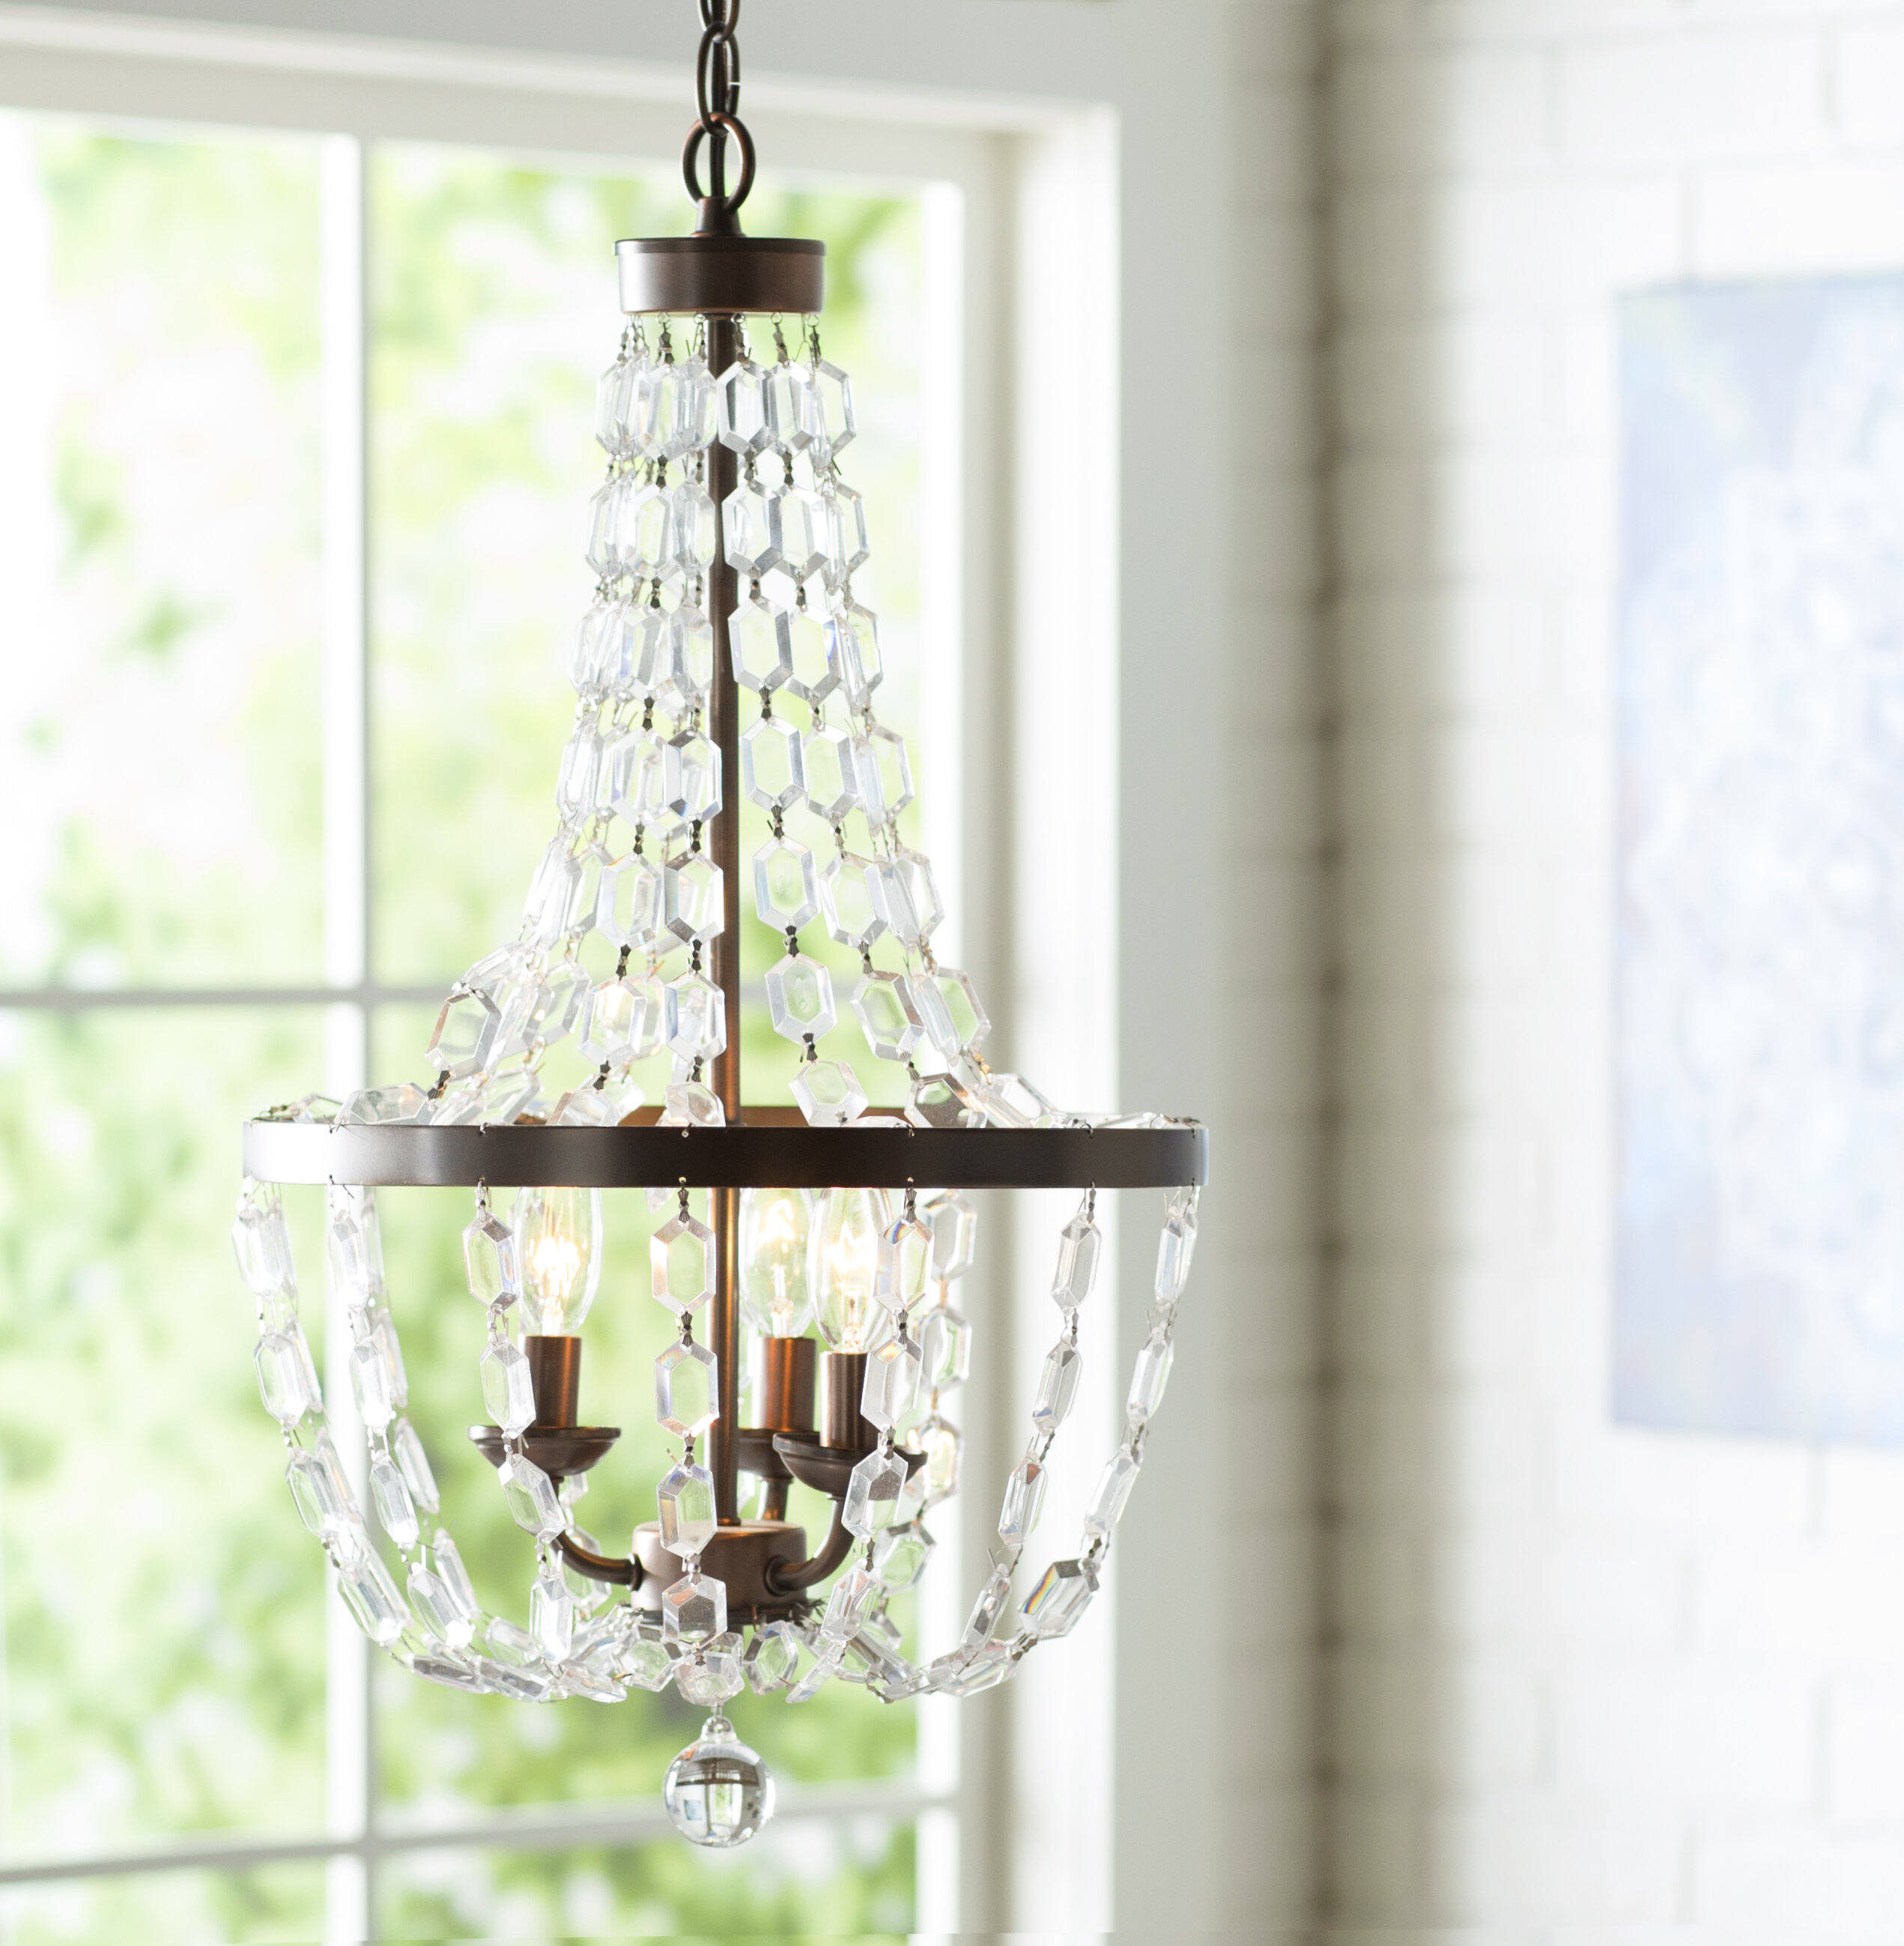 pendant lanterns lighti foyer all lantern extra trgn large on morgan wide chandelier lights inch entryway style shades